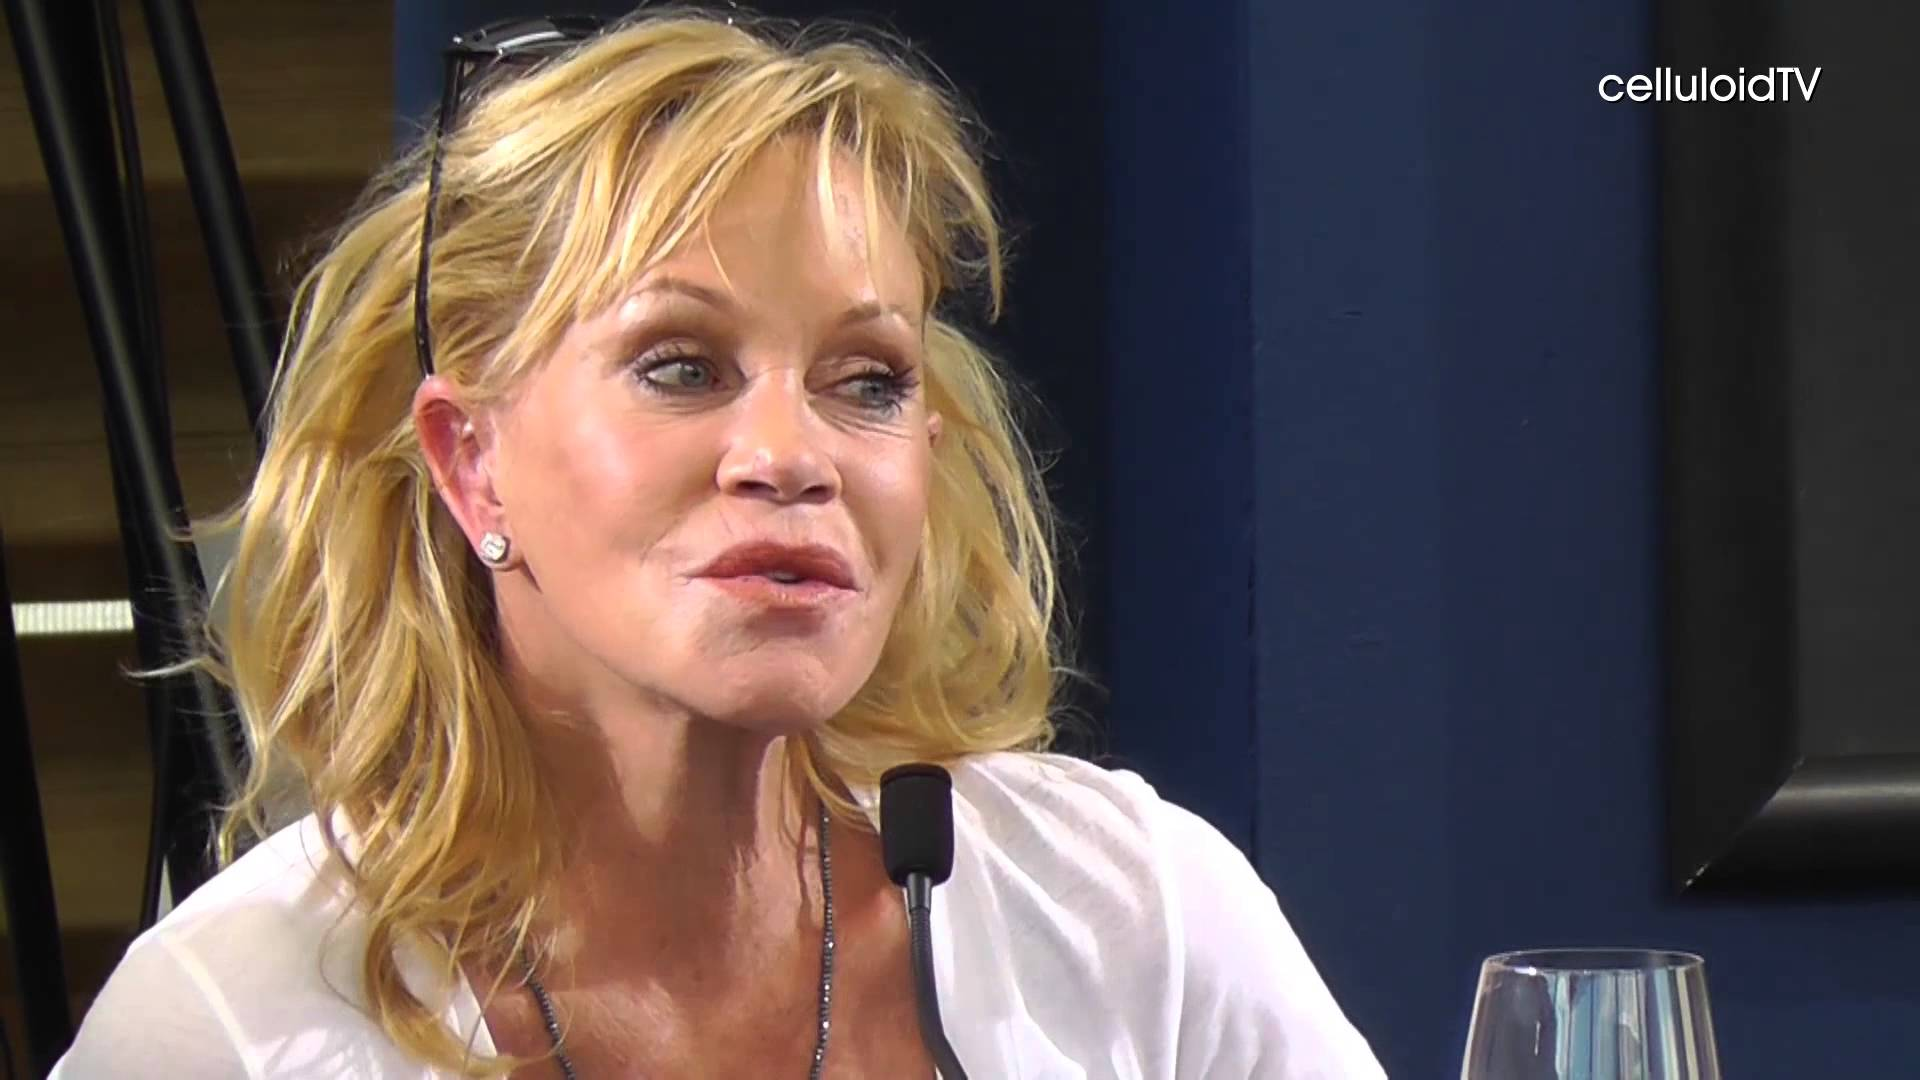 Melanie Griffith Hd Wallpapers Free Download